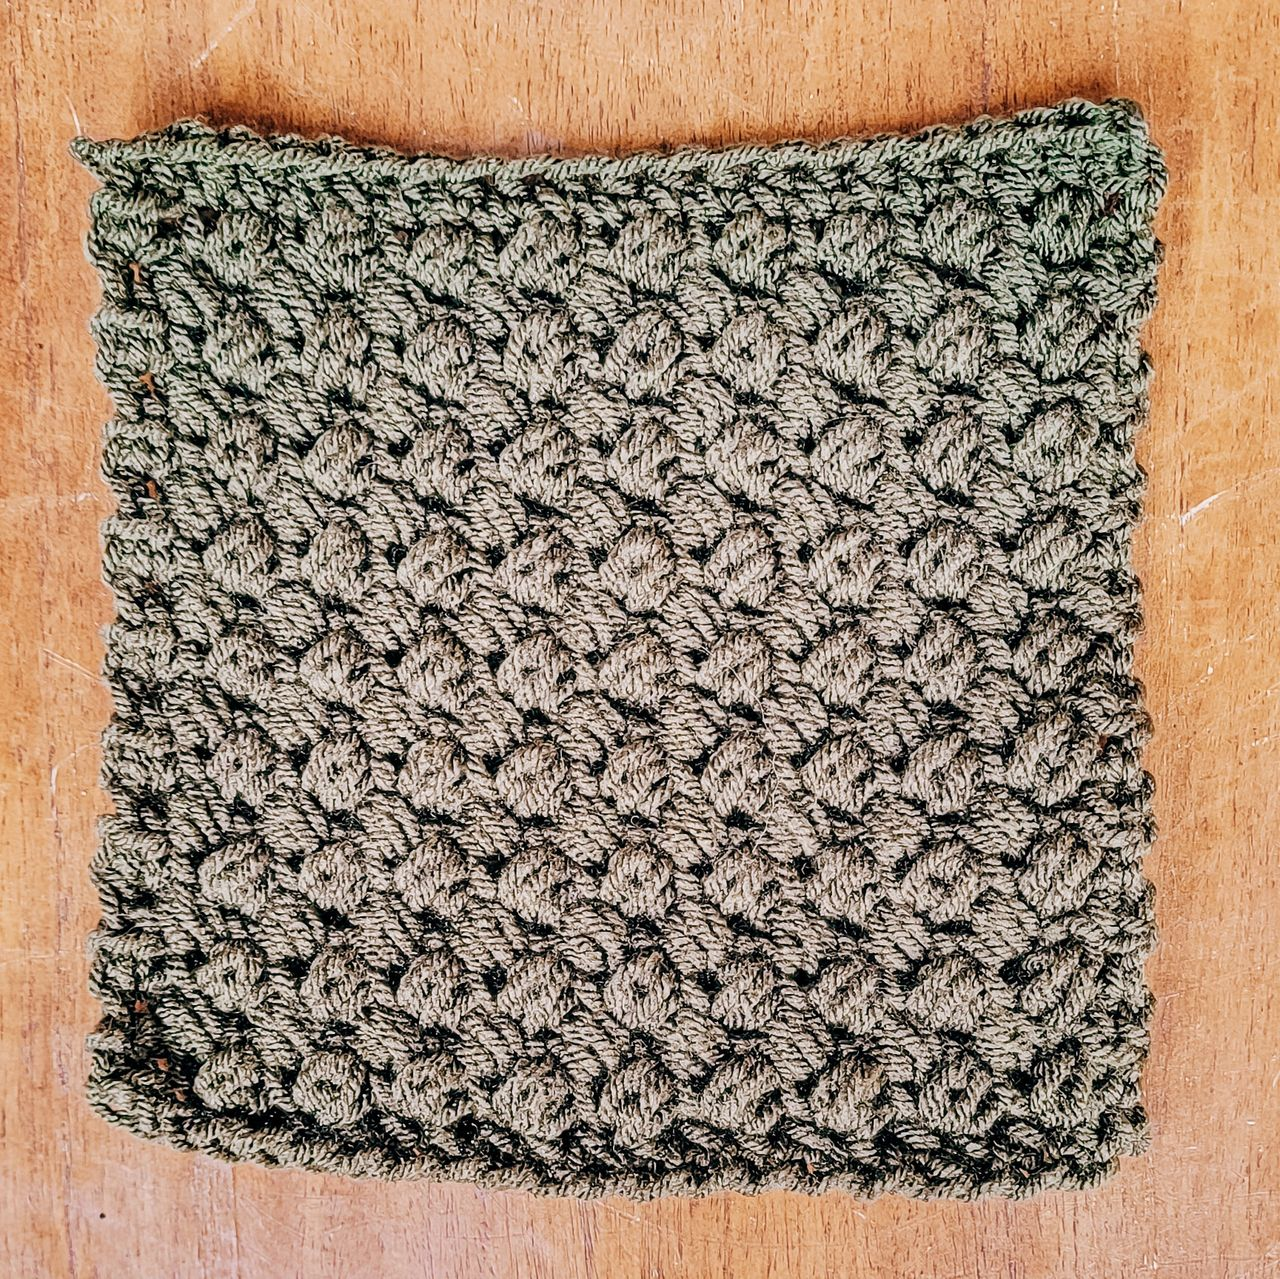 Free Crochet Pattern for today!